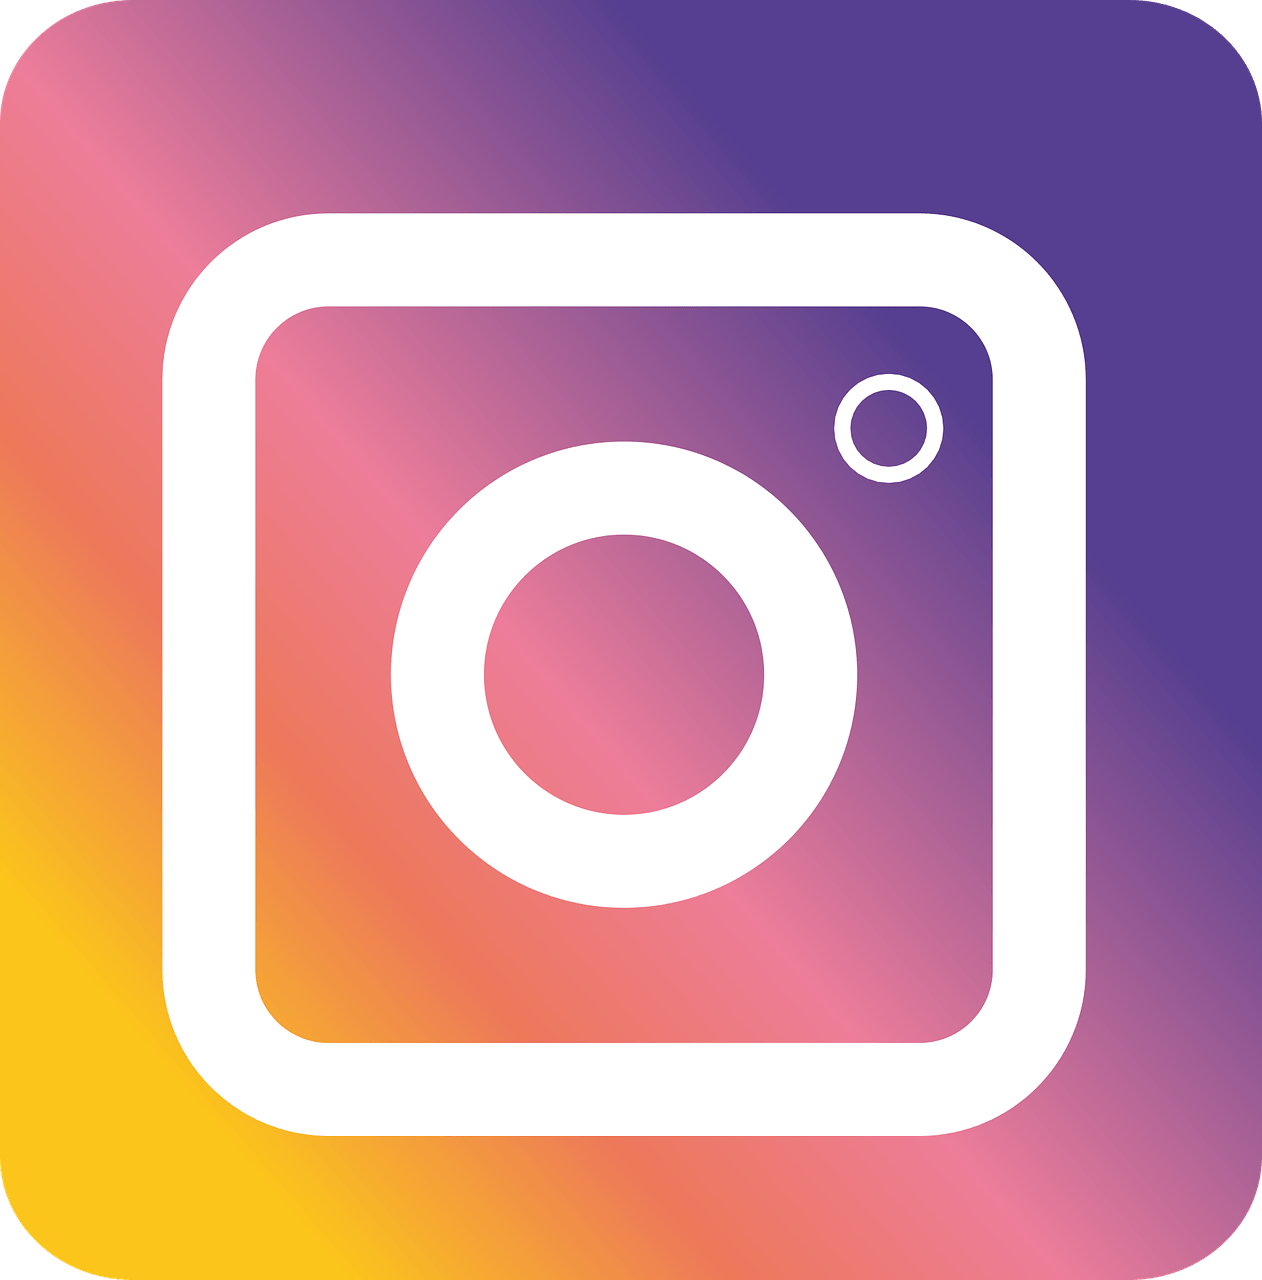 Instagram Hiding Likes From Users In 6 More Countries